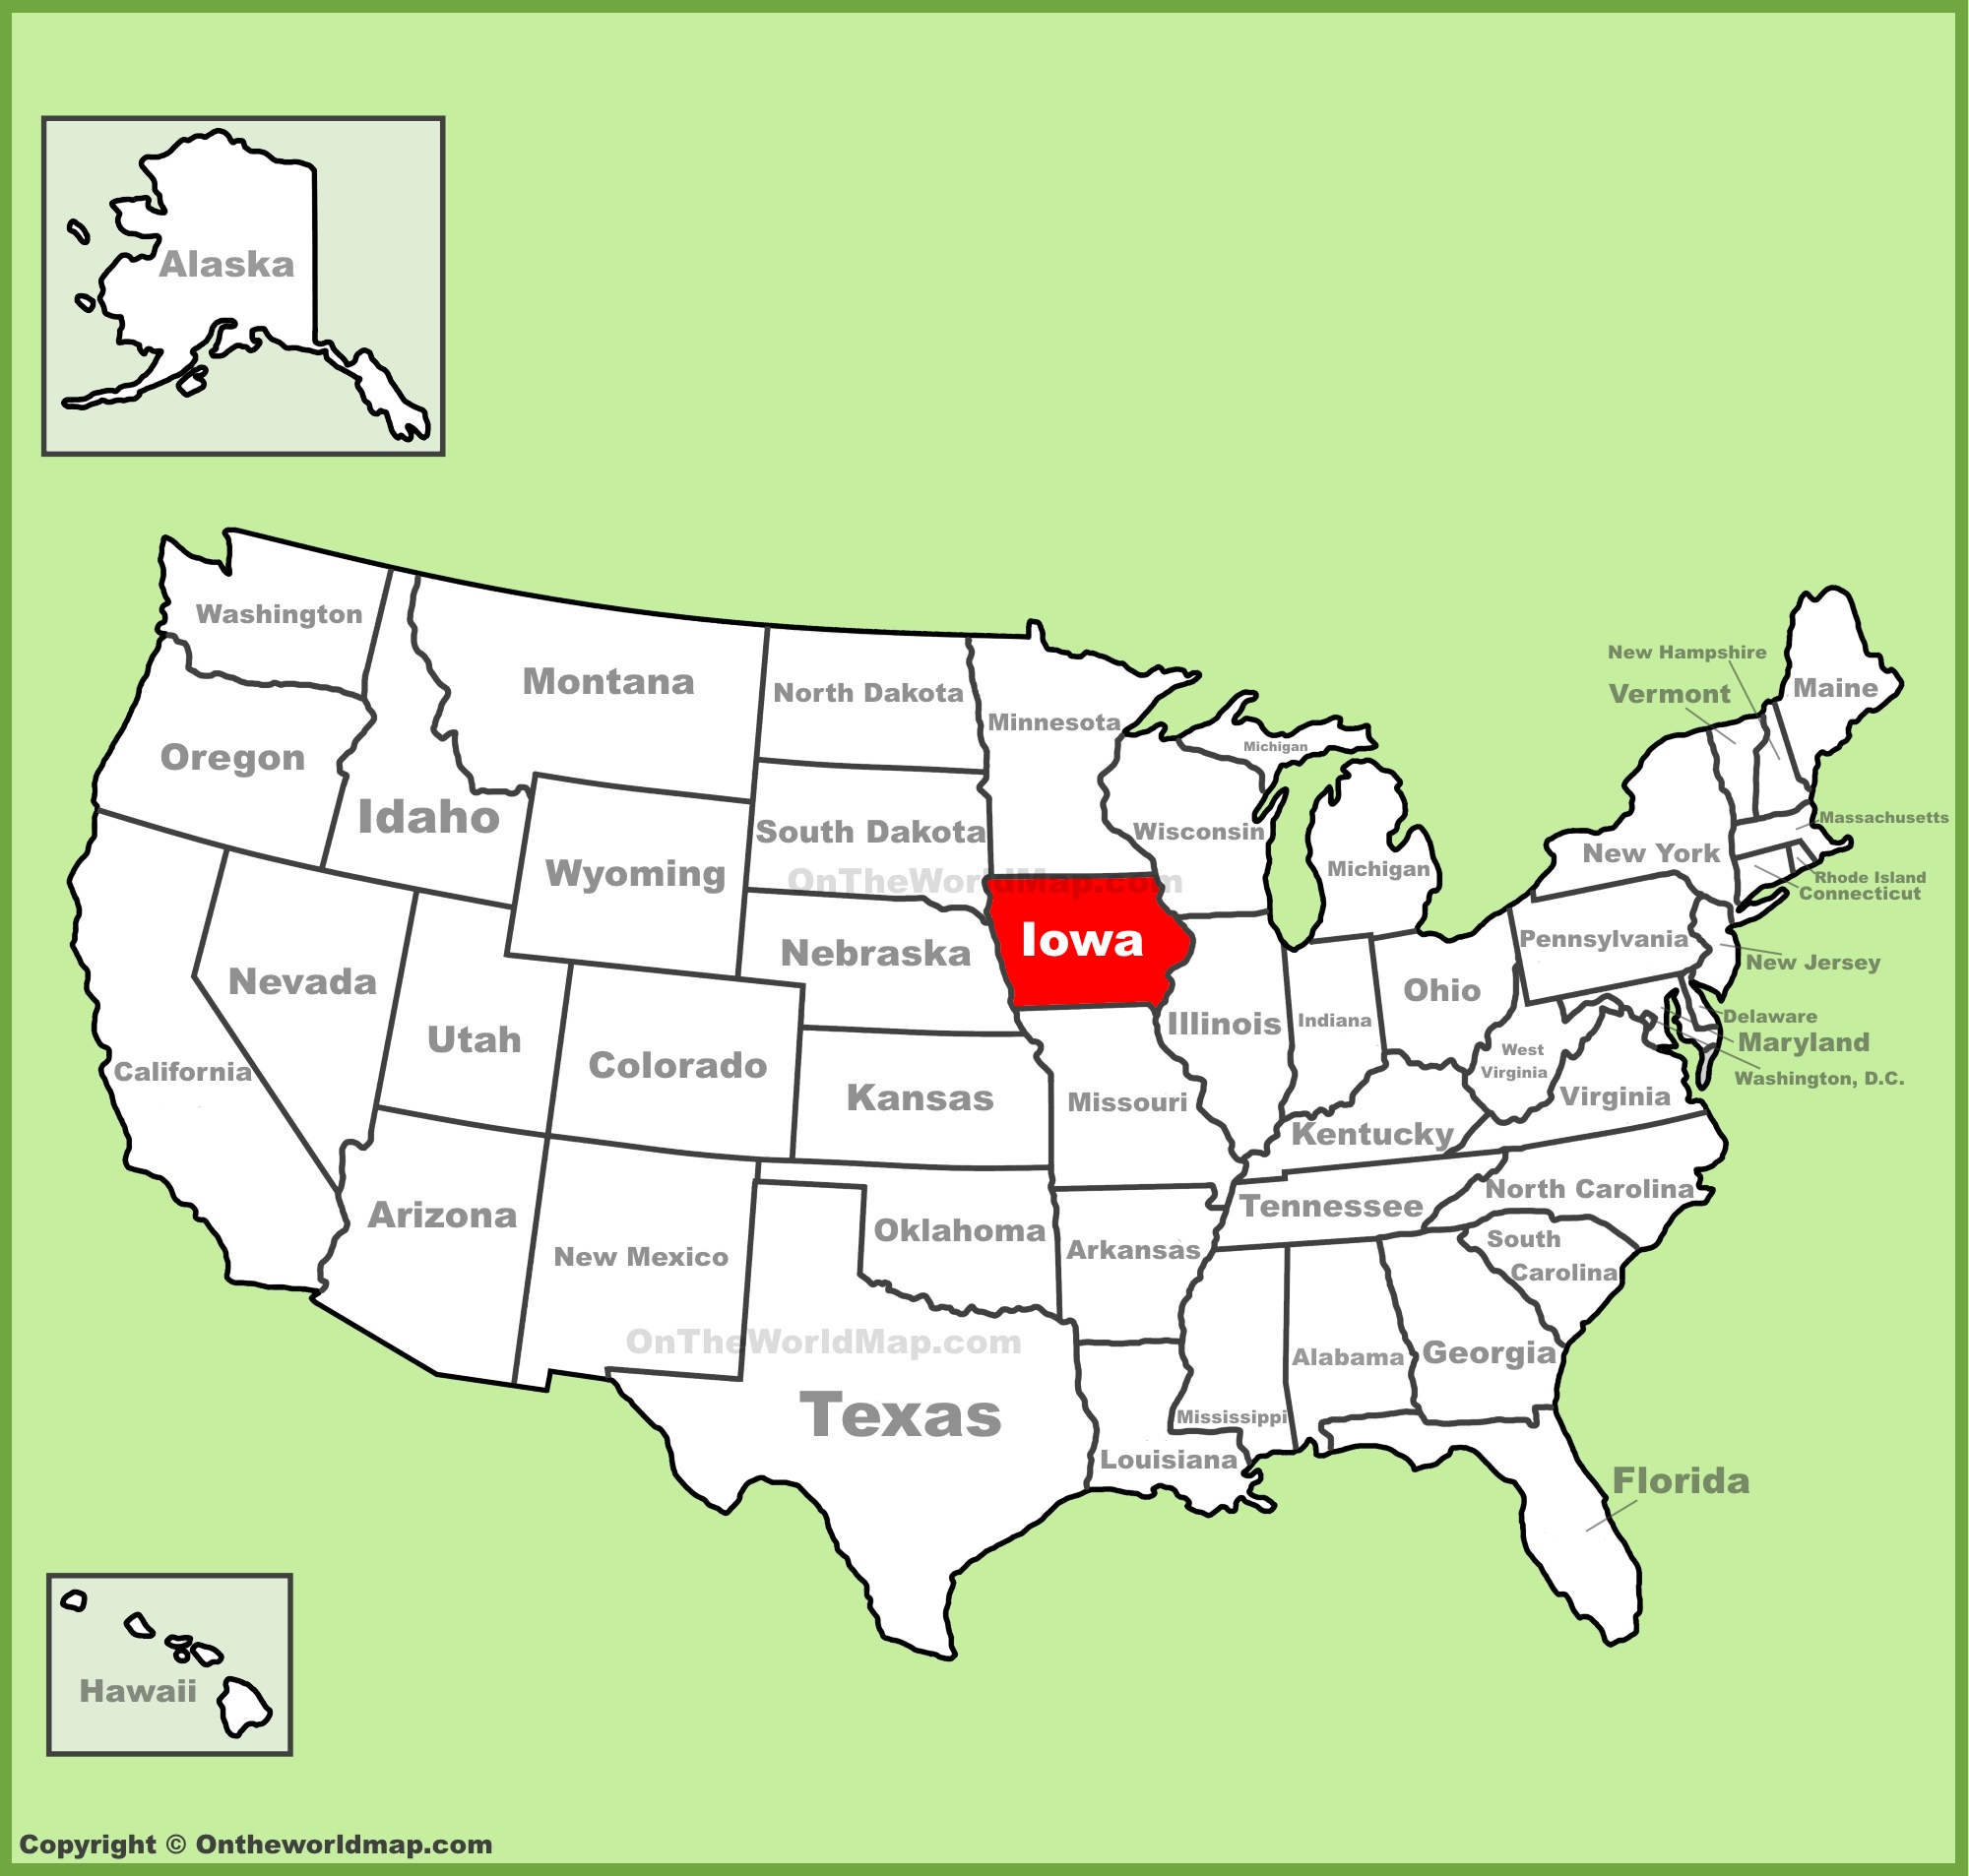 Iowa State Maps USA Maps Of Iowa IA - Iowa on us map